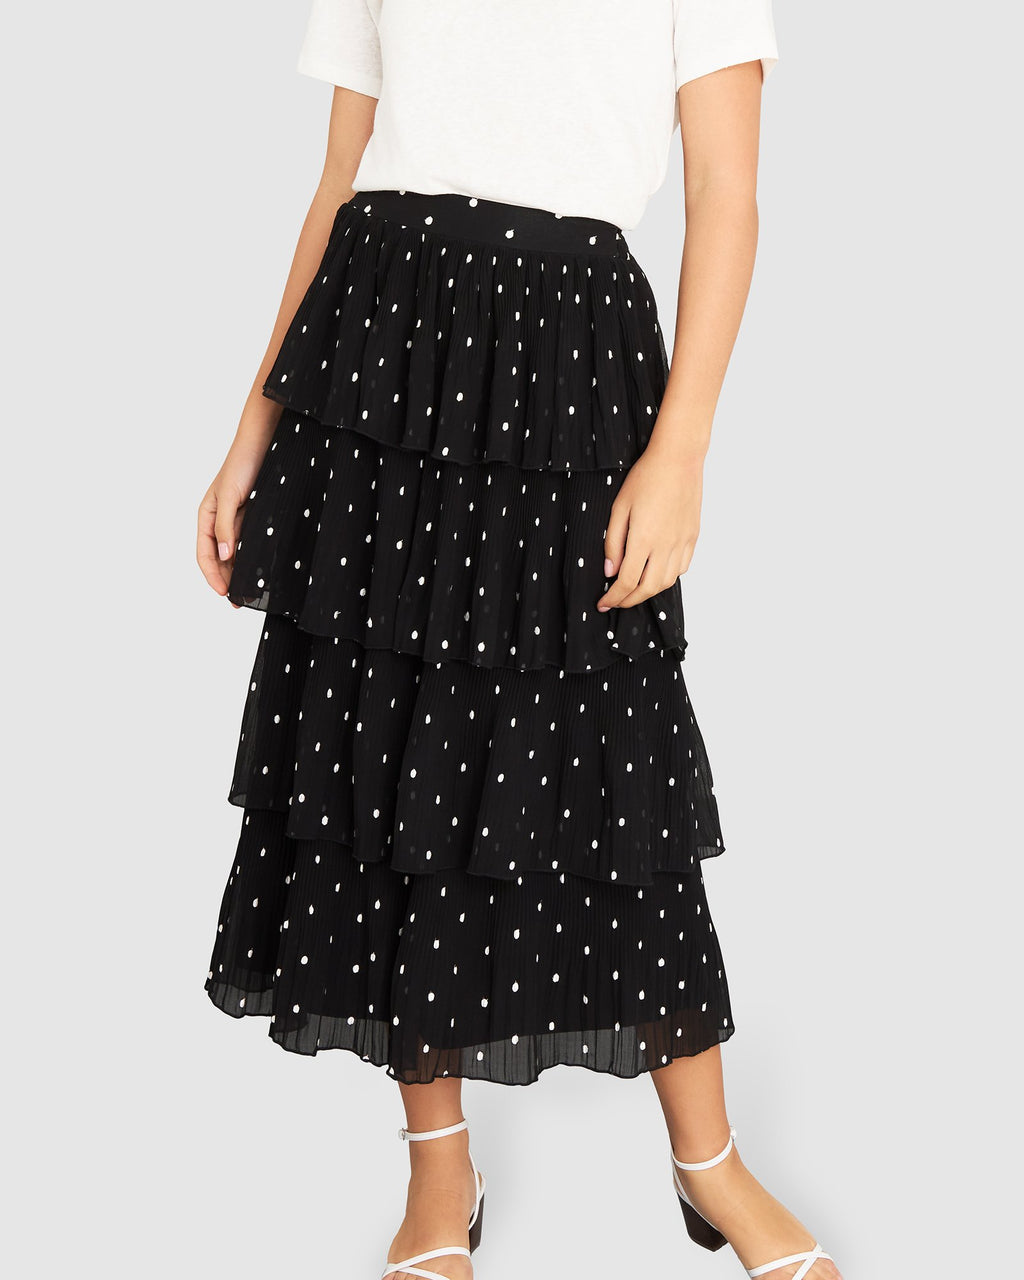 Evie Frill Midi Skirt - Black / White Spot